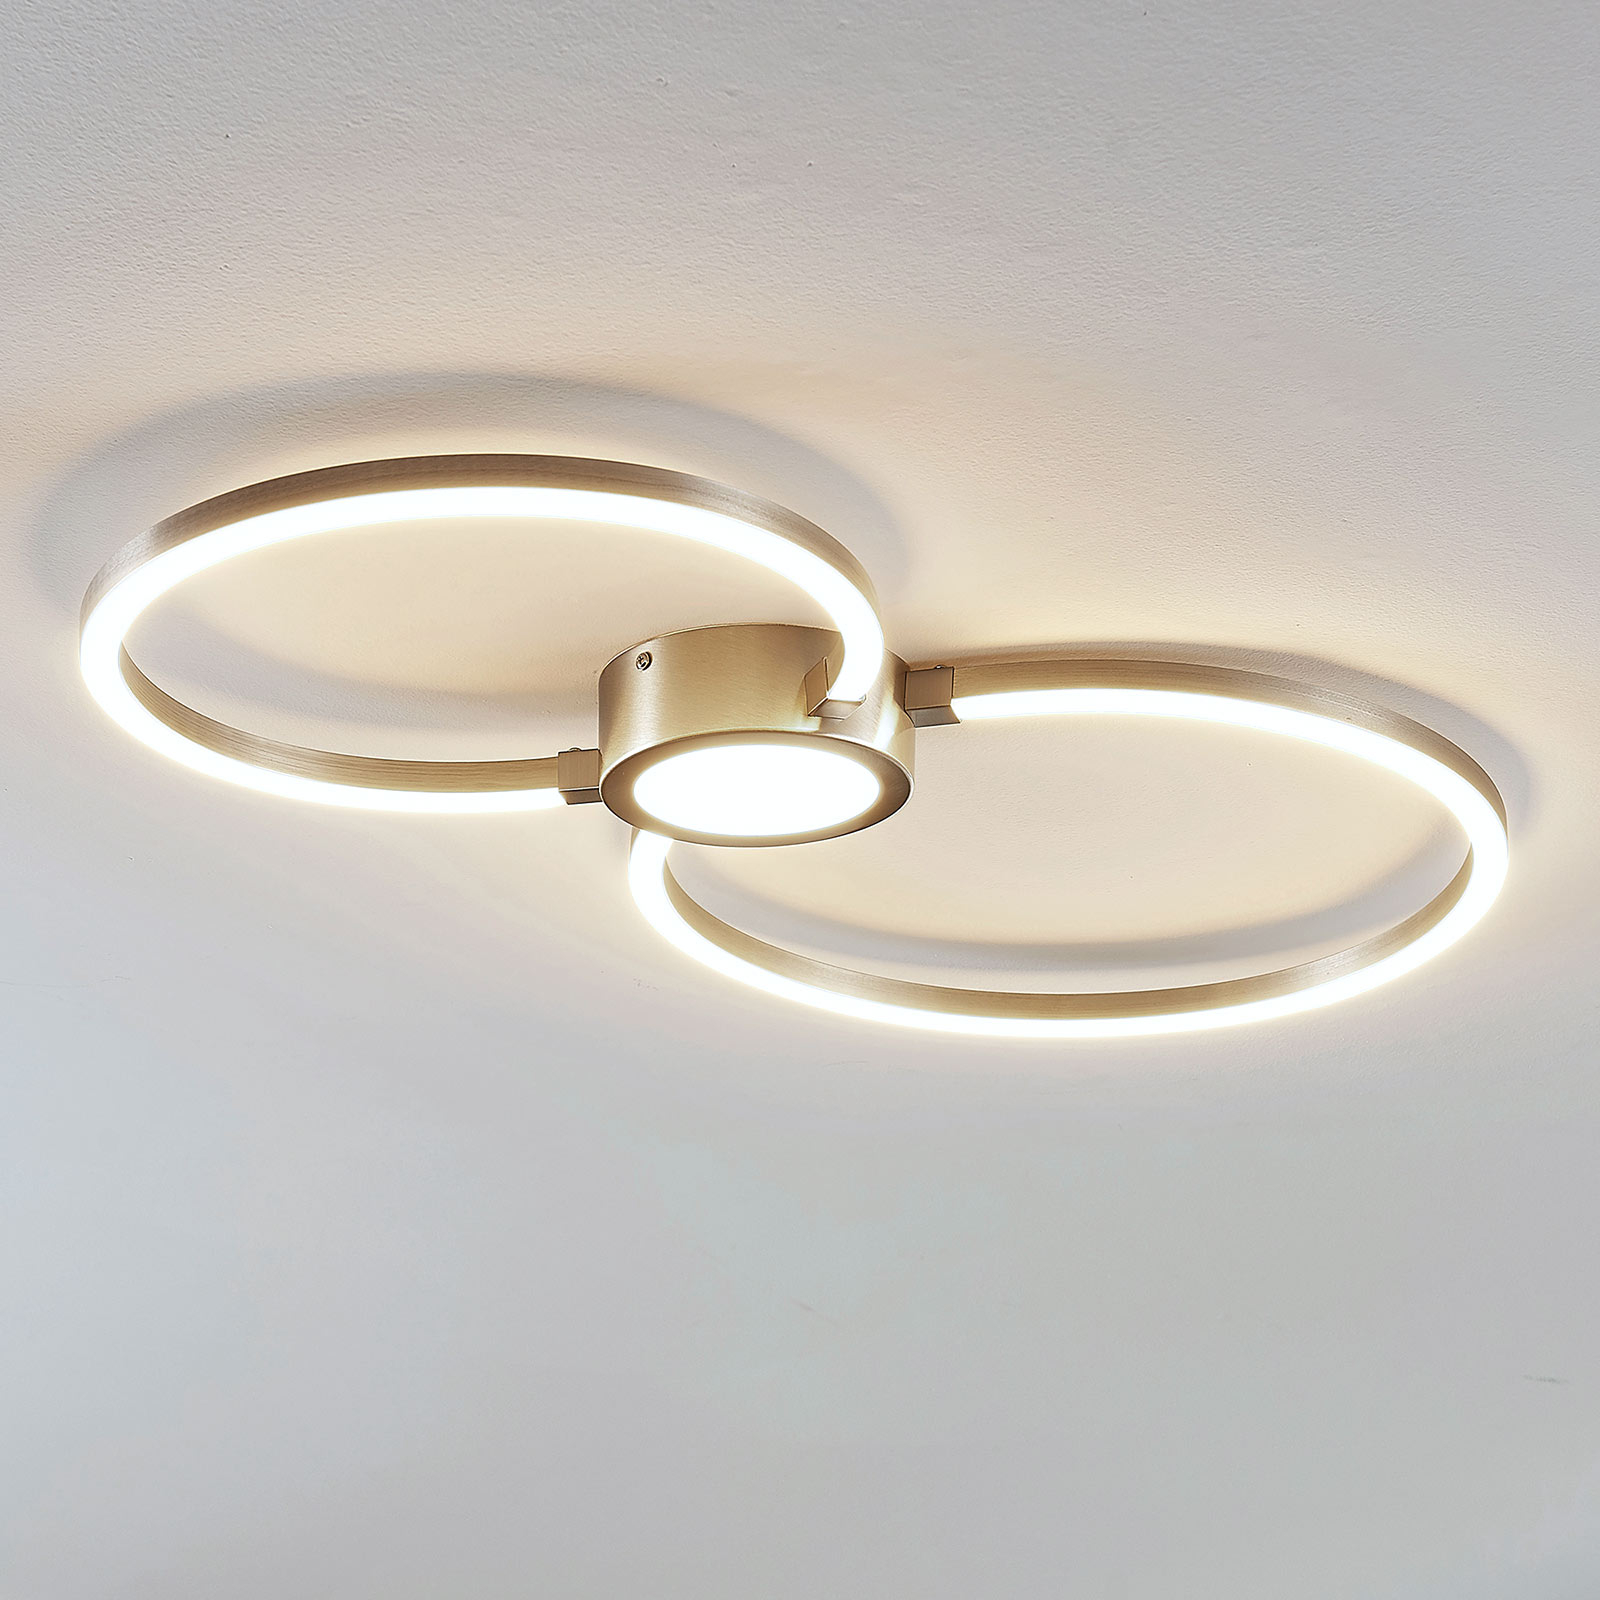 Plafonnier LED Duetto, cercles